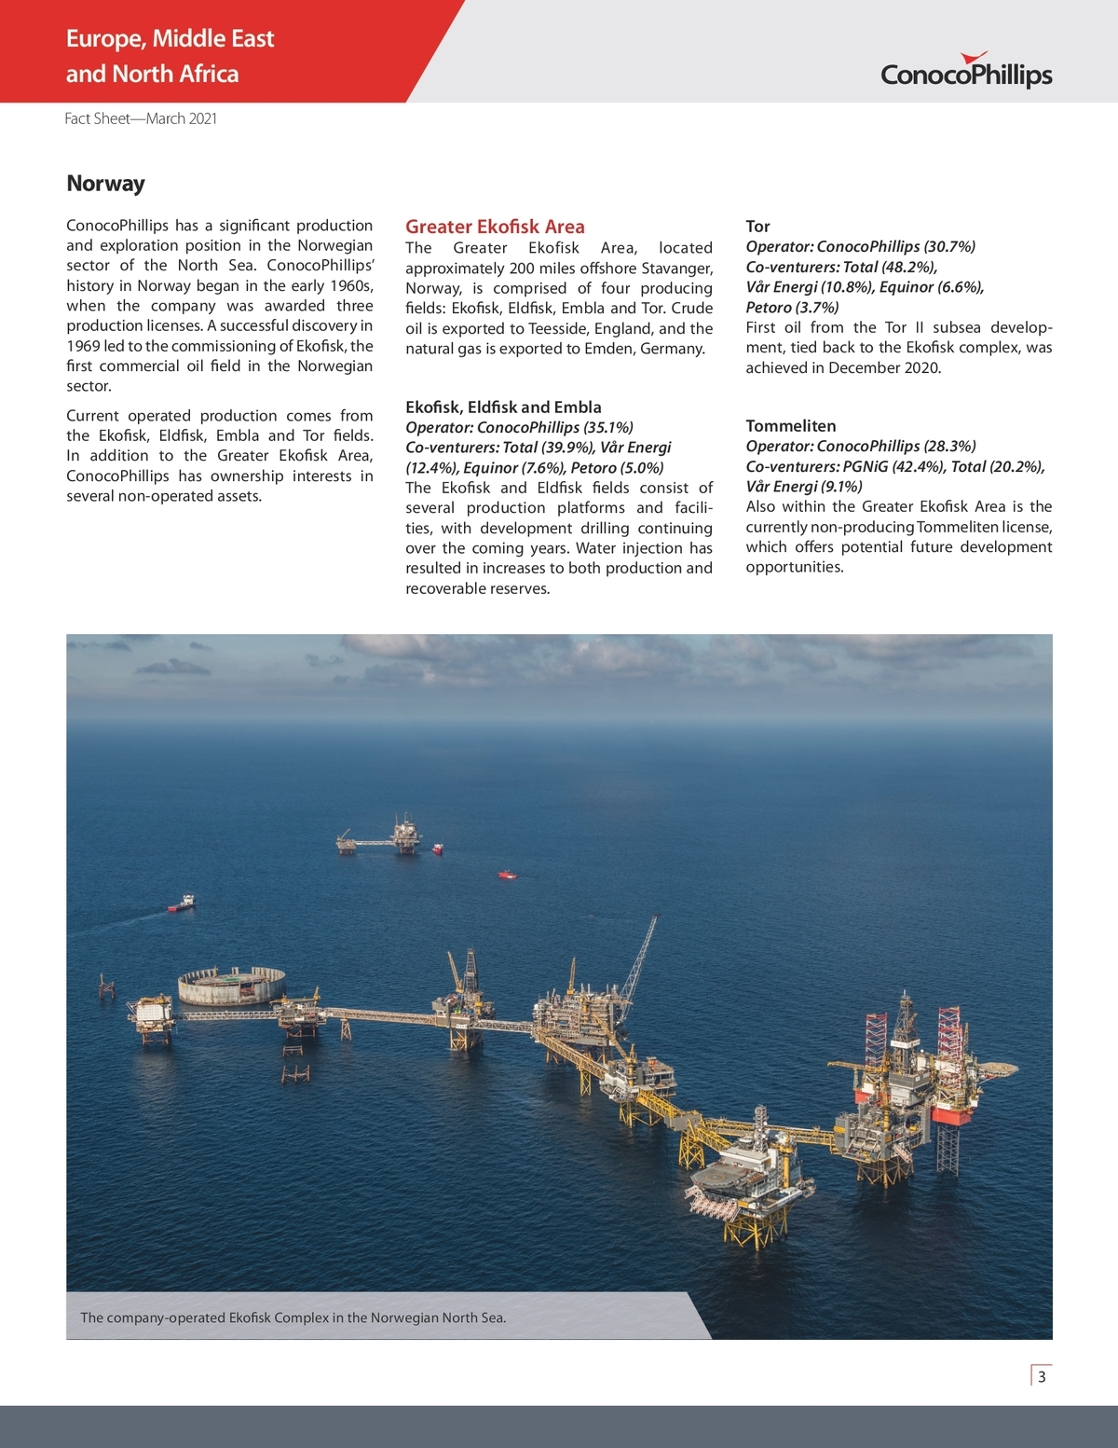 ConocoPhillips Fact Sheets: Europe & North Africa